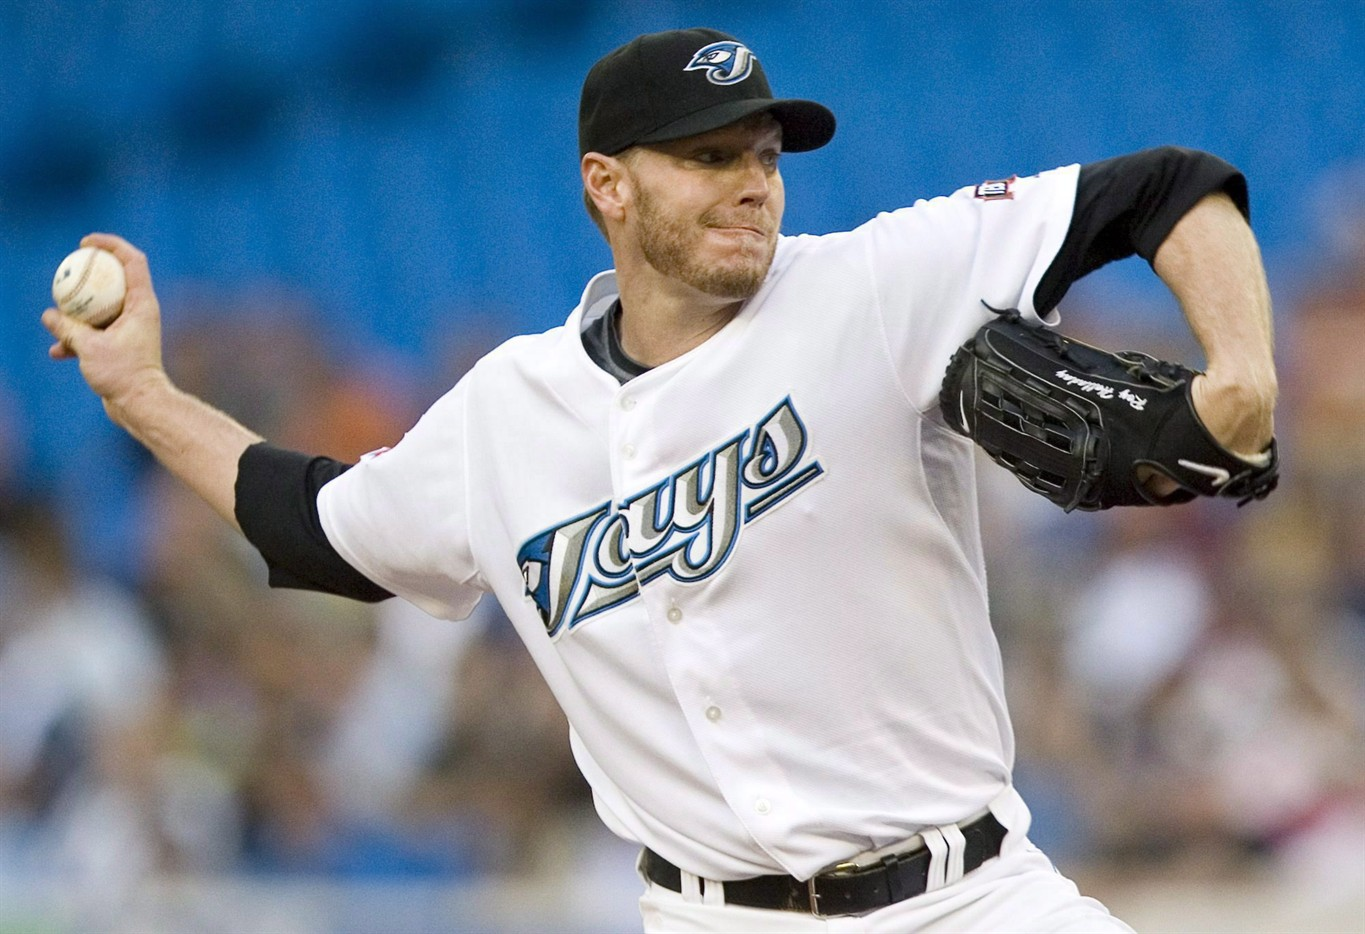 Image result for roy halladay toronto images